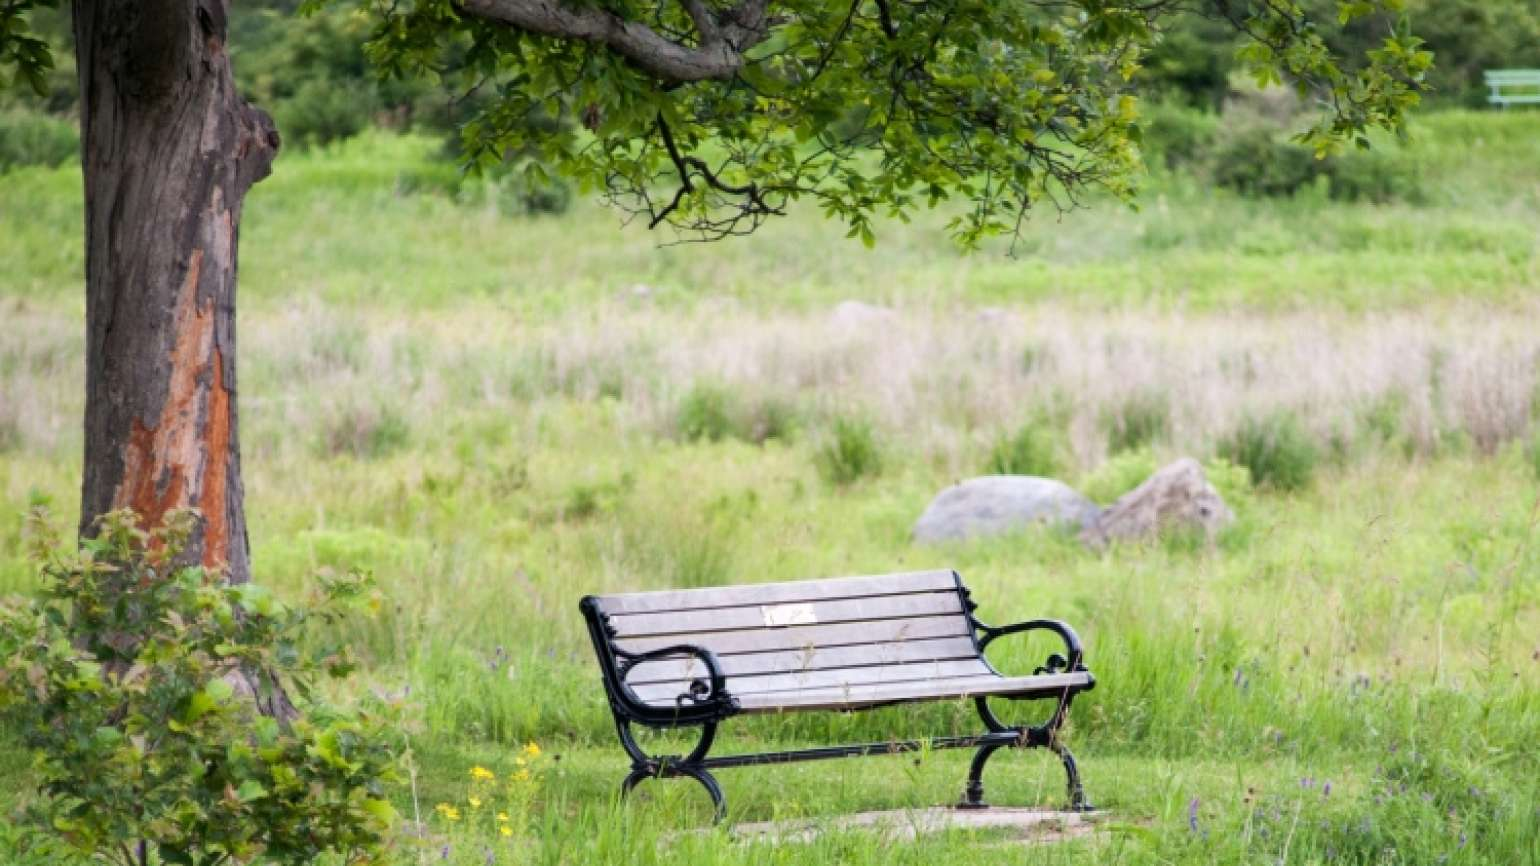 A memorial bench gives pause for a spiritual exercise